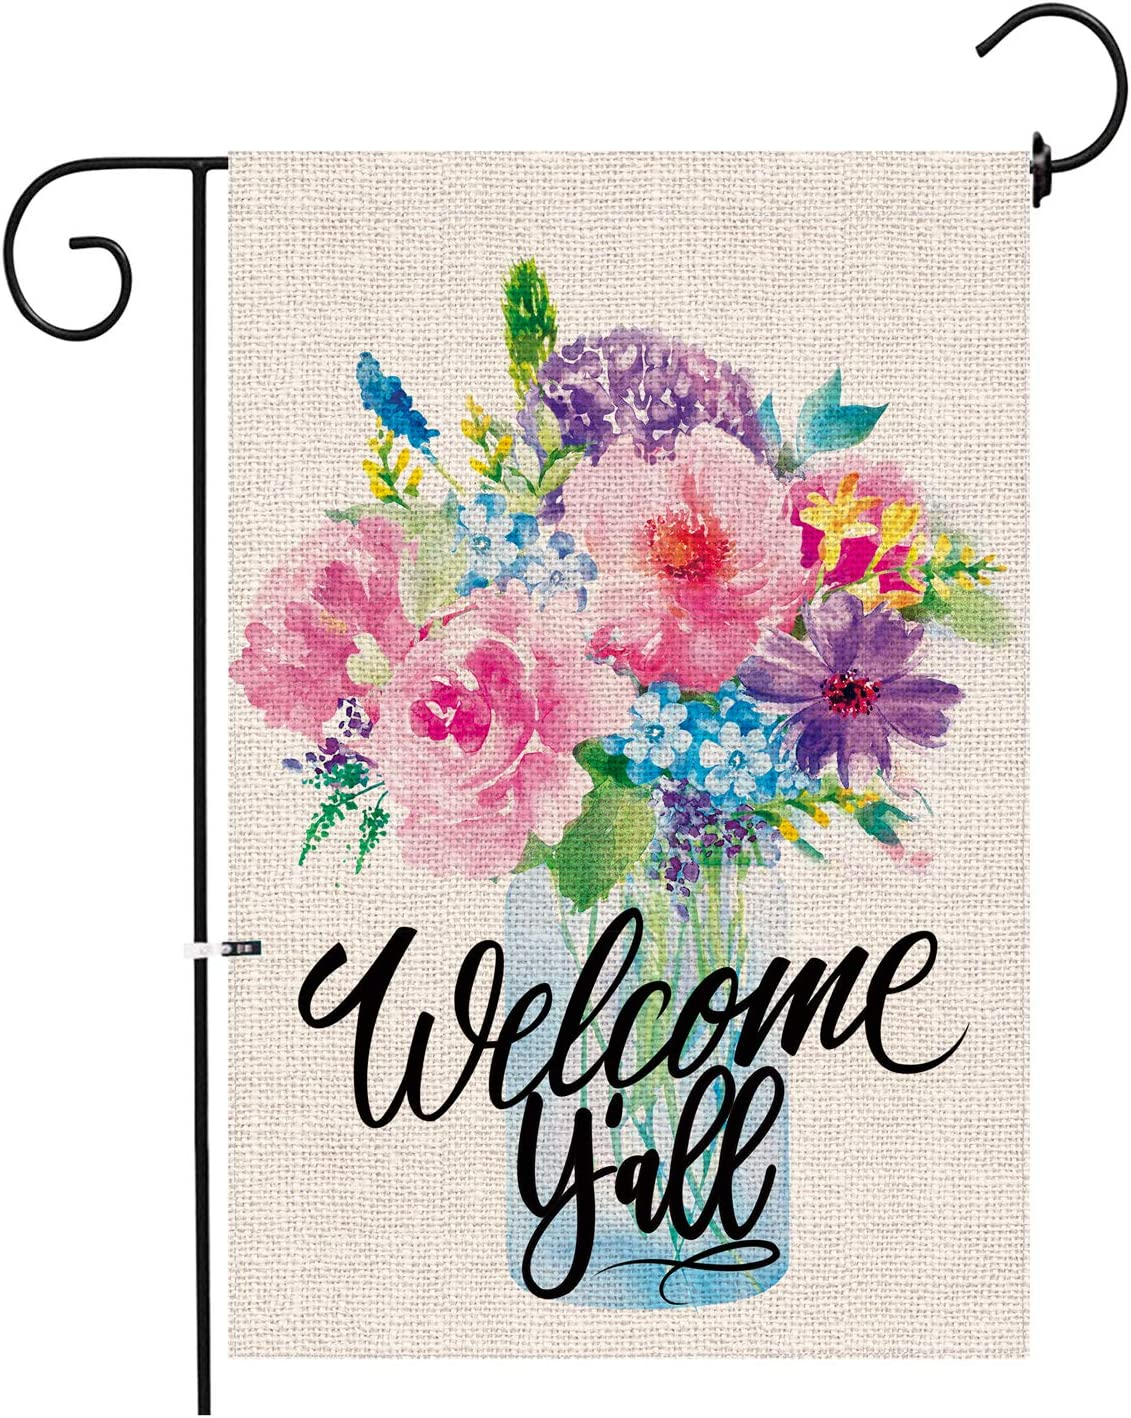 Hexagram Spring Garden Flag,Welcome Y'All Yard Small Burlap Garden Flag Double Sided,Mason Jars Flowers Spring and Summer Welcome Outdoor Decoration Sign,Garde Flags 12x18 Prime